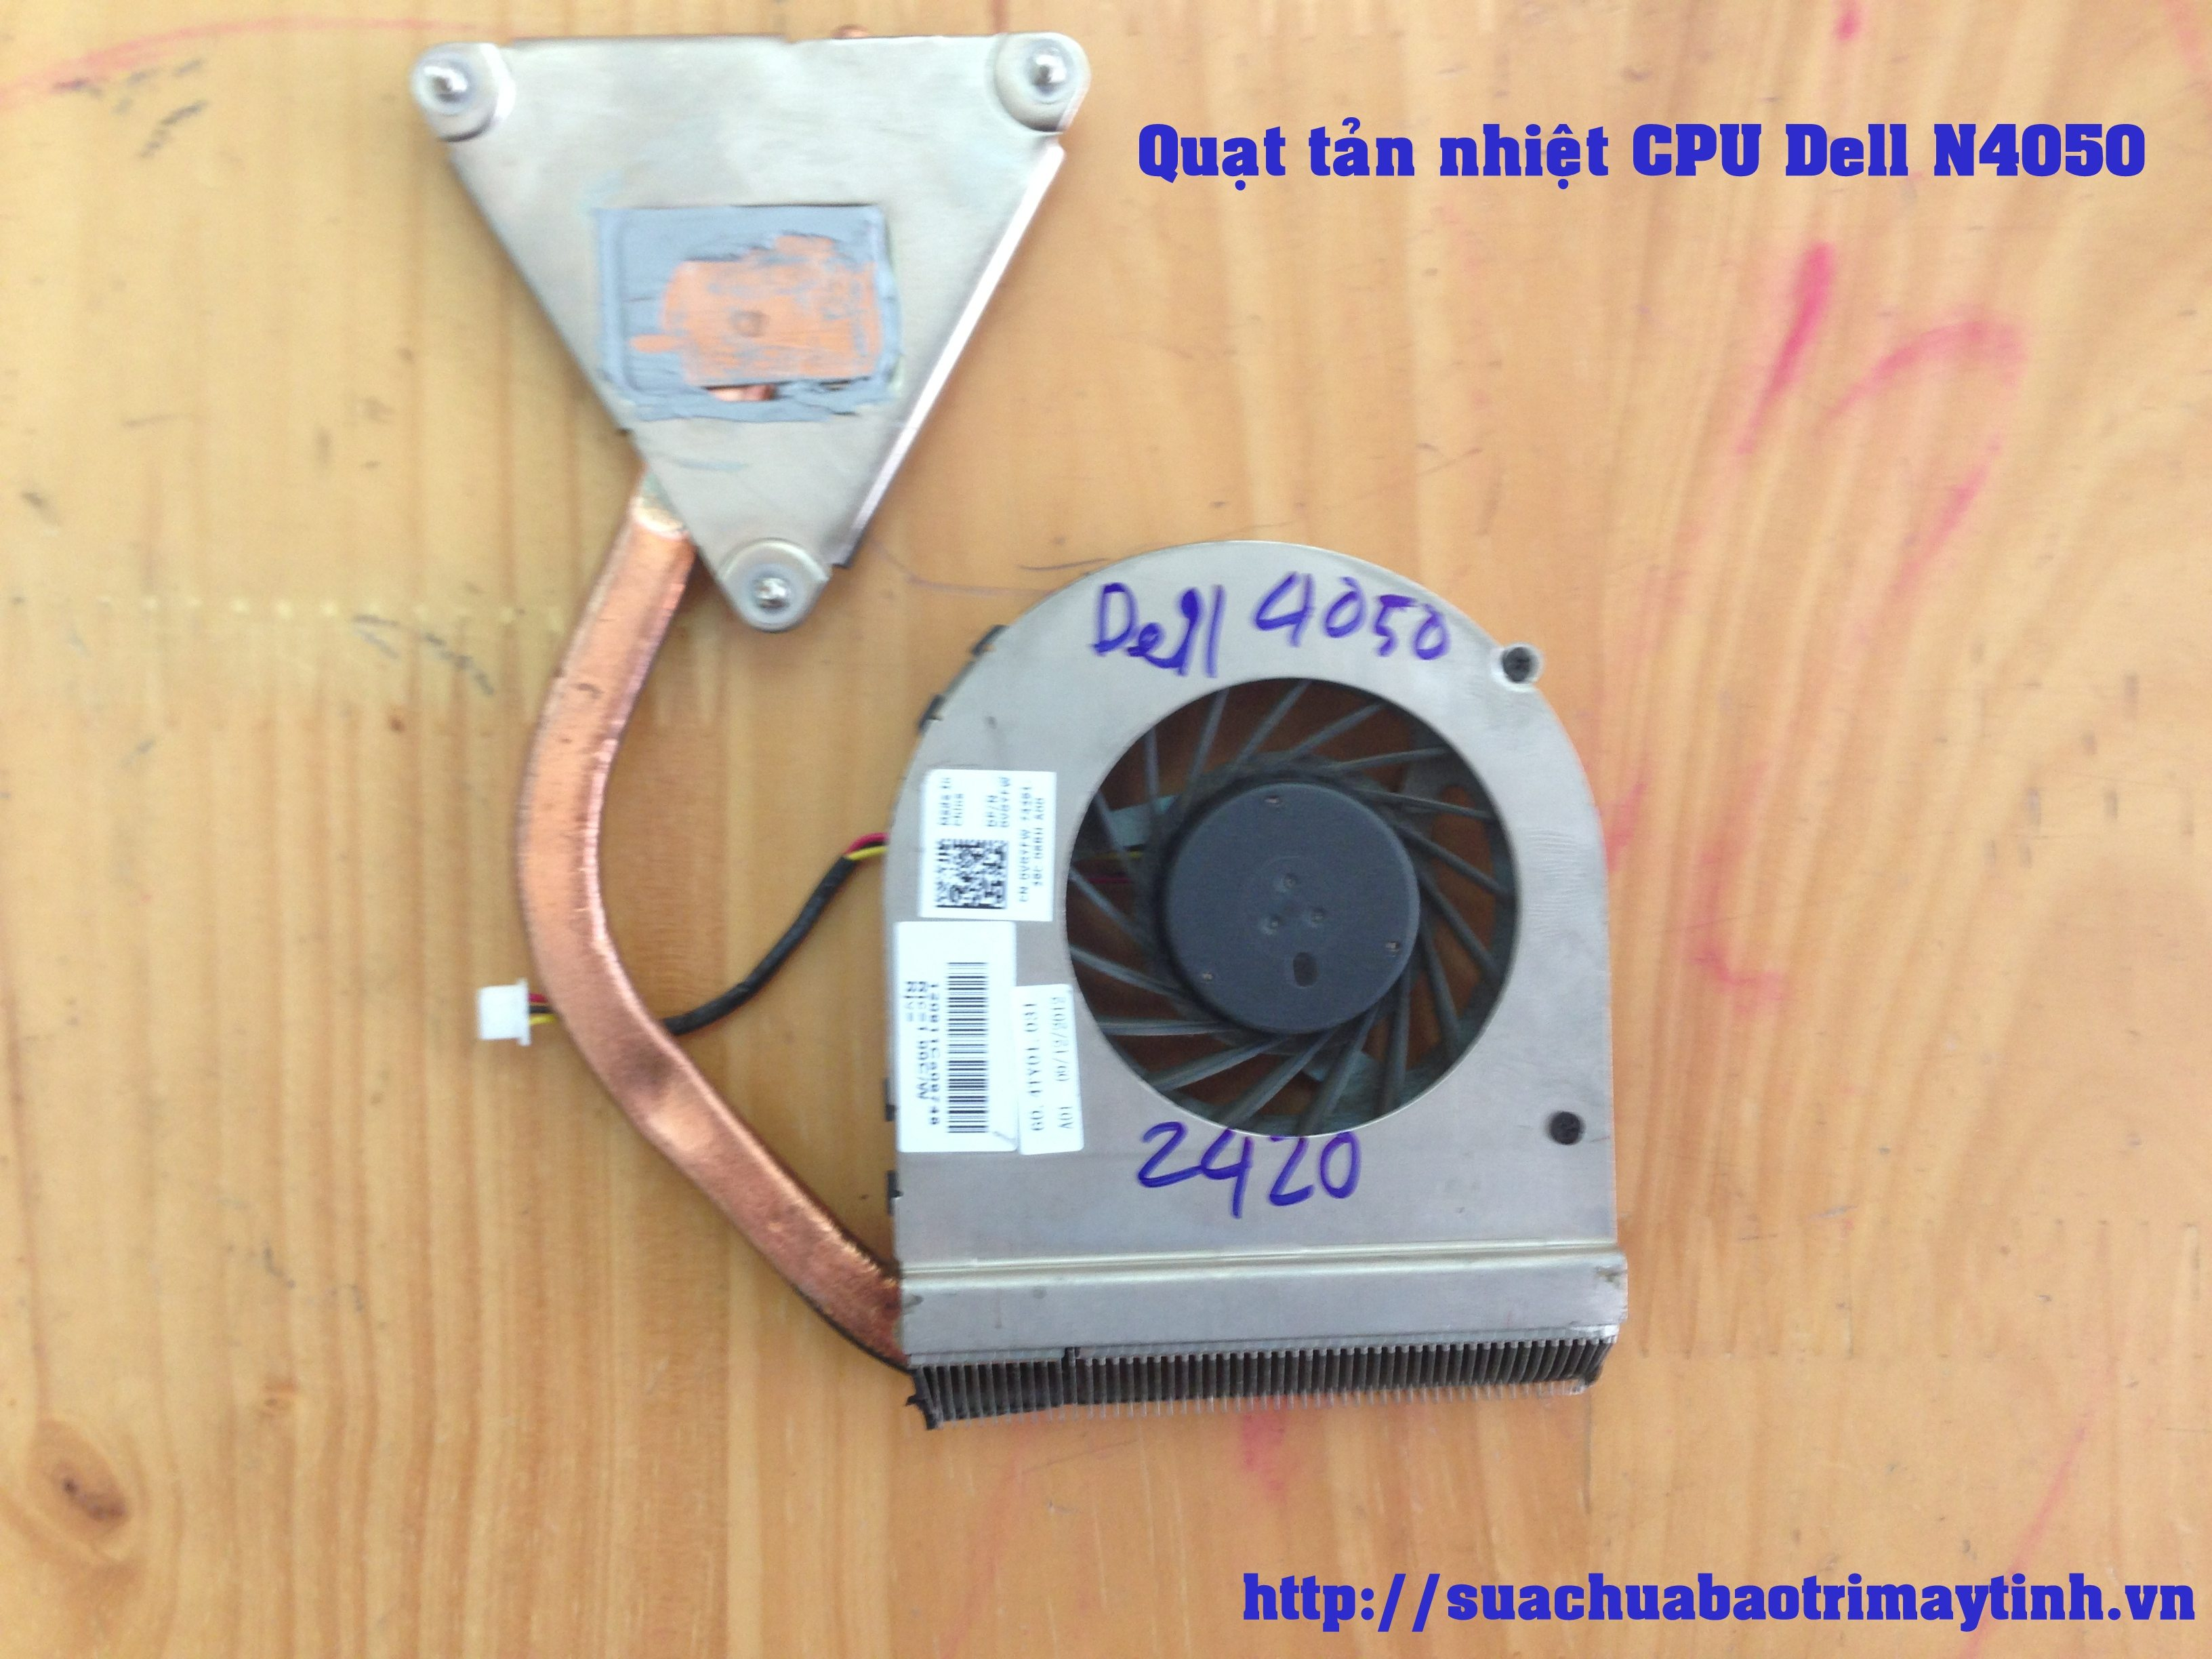 quat tan nhiet cpu dell n4050.JPG